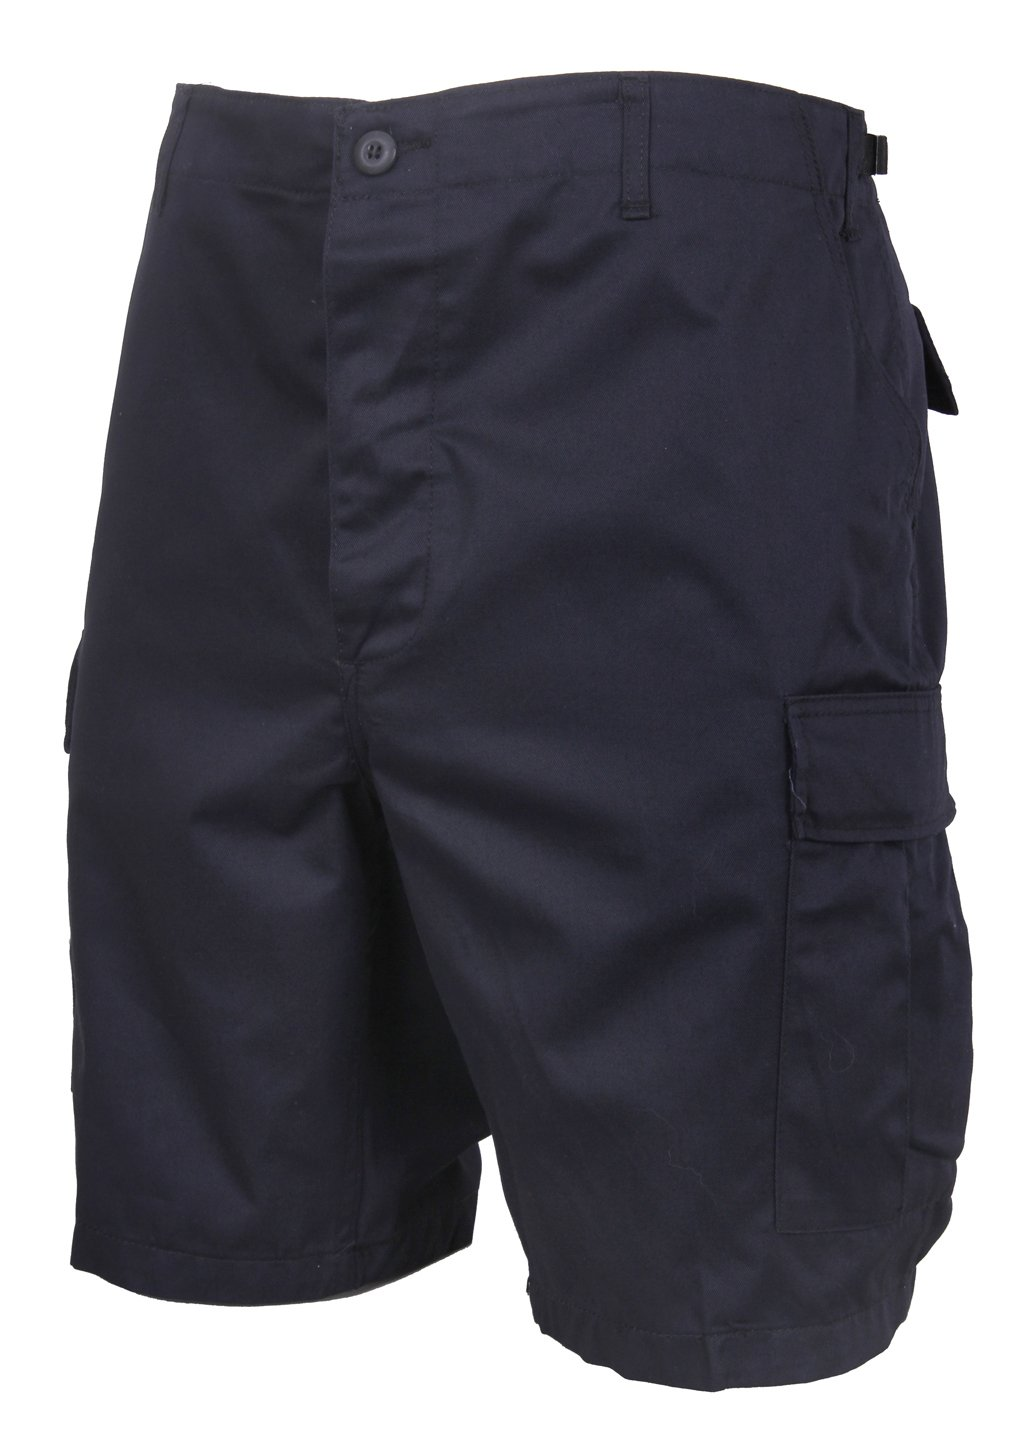 Rothco P/C BDU Shorts, Midnight Blue, M